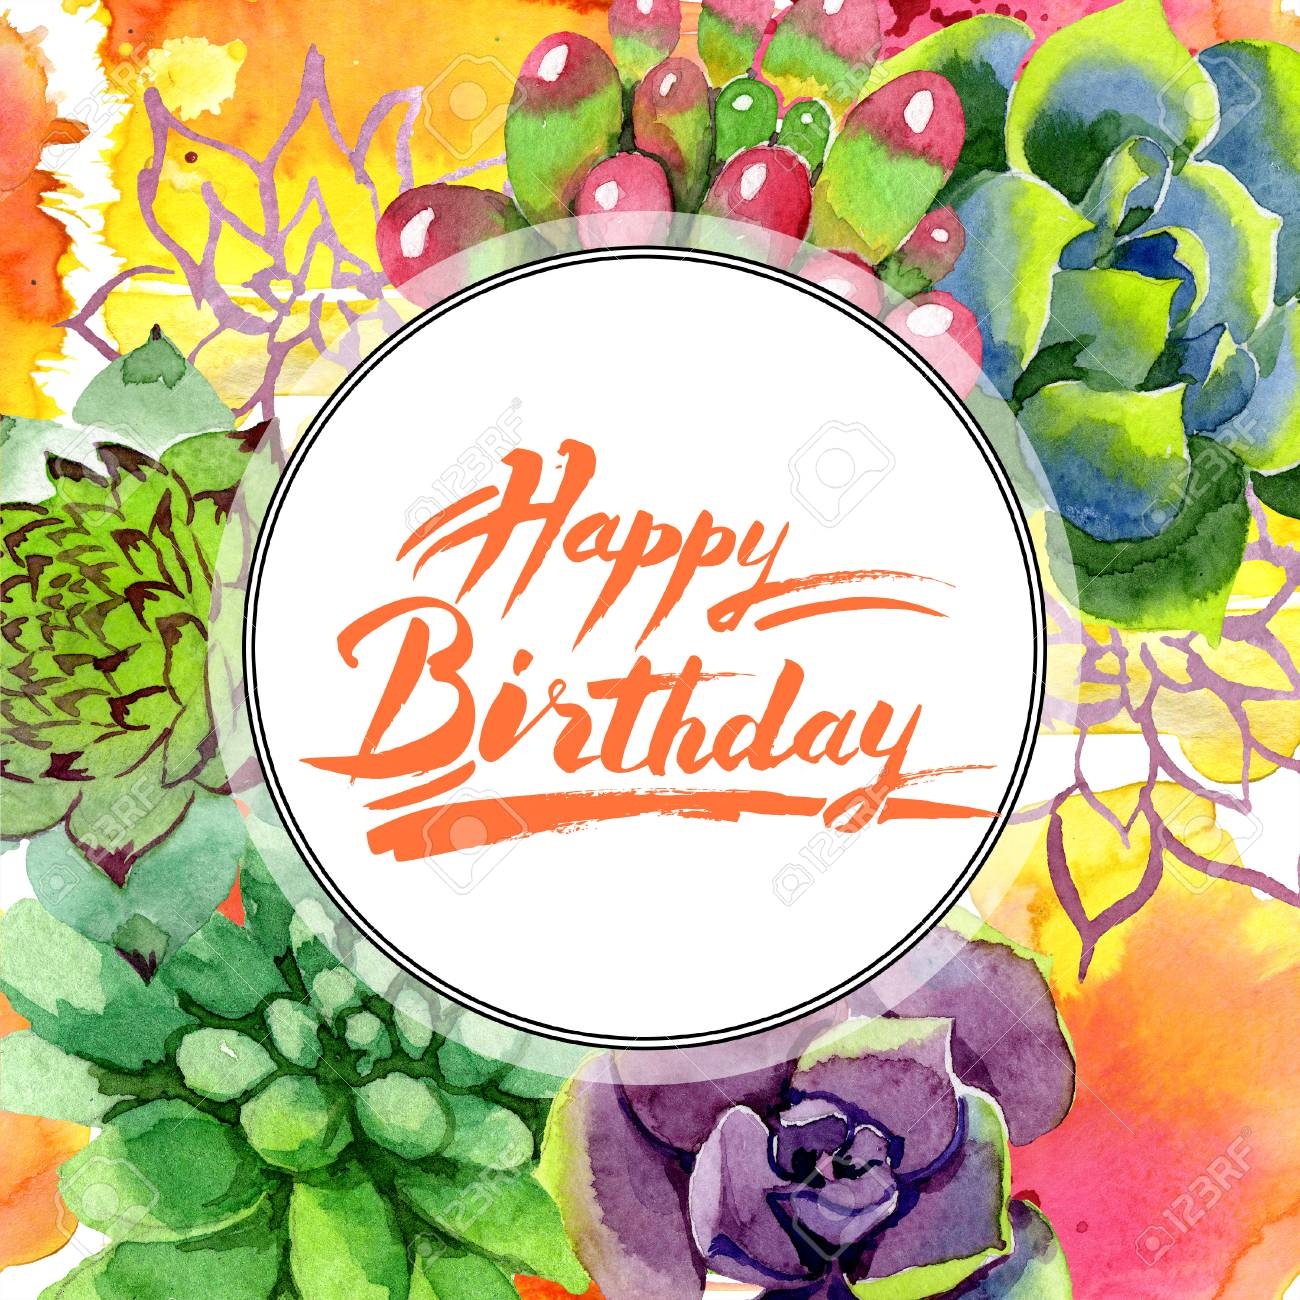 Amazing Succulent Happy Birthday Handwriting Monogram Calligraphy Stock Photo Picture And Royalty Free Image Image 113293791